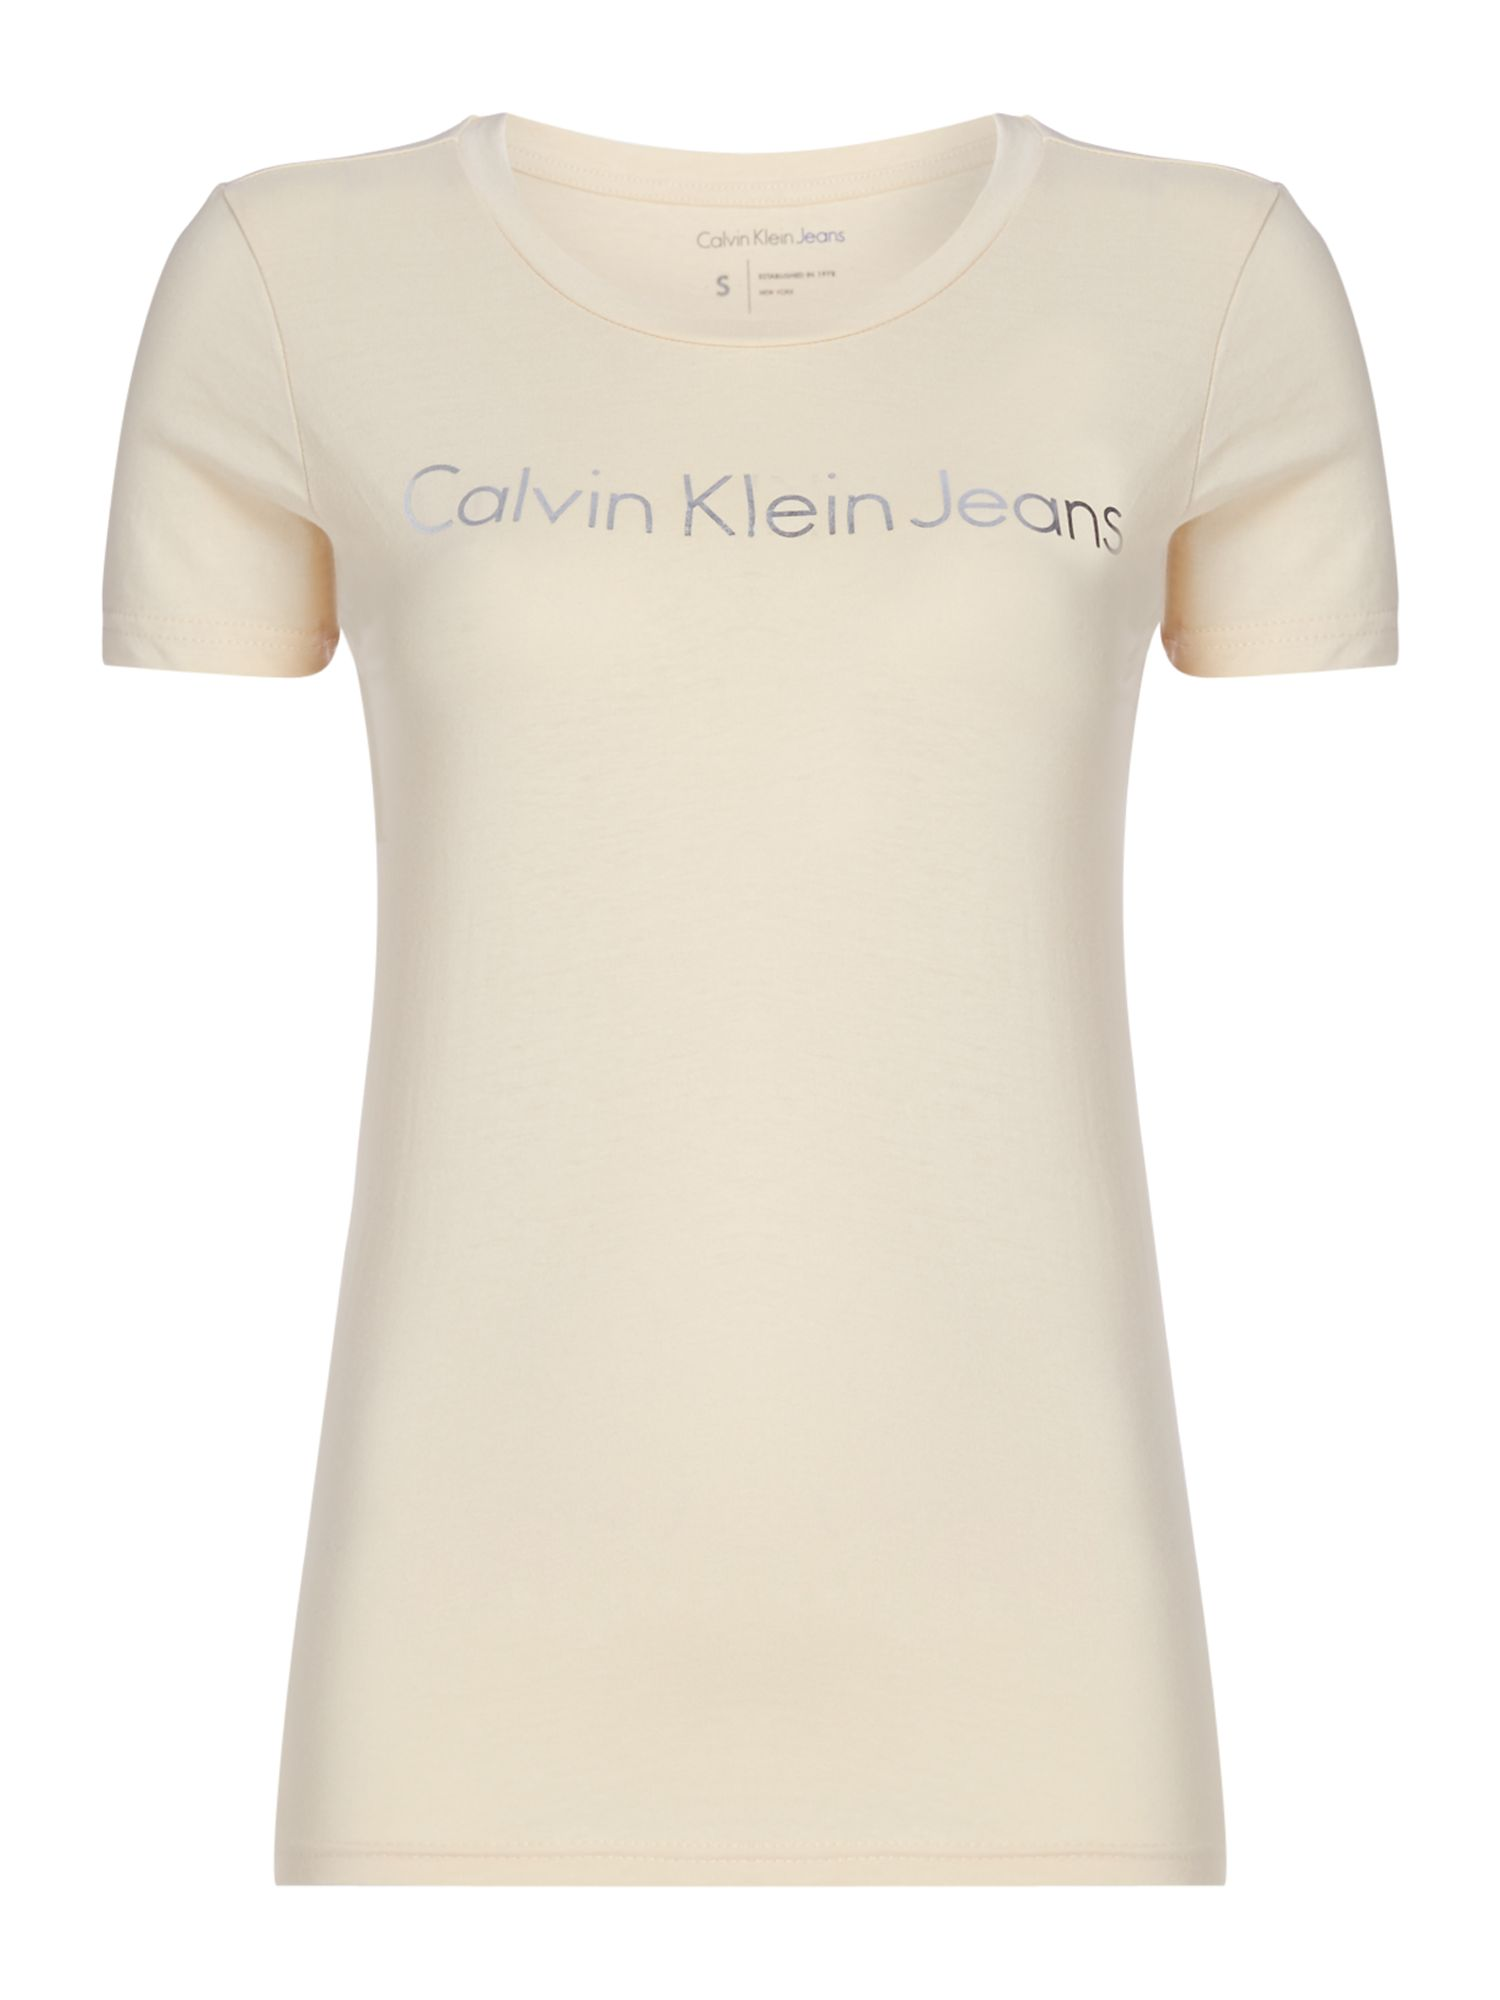 Calvin Klein Short Sleeves Logo T-shirt, Lemon